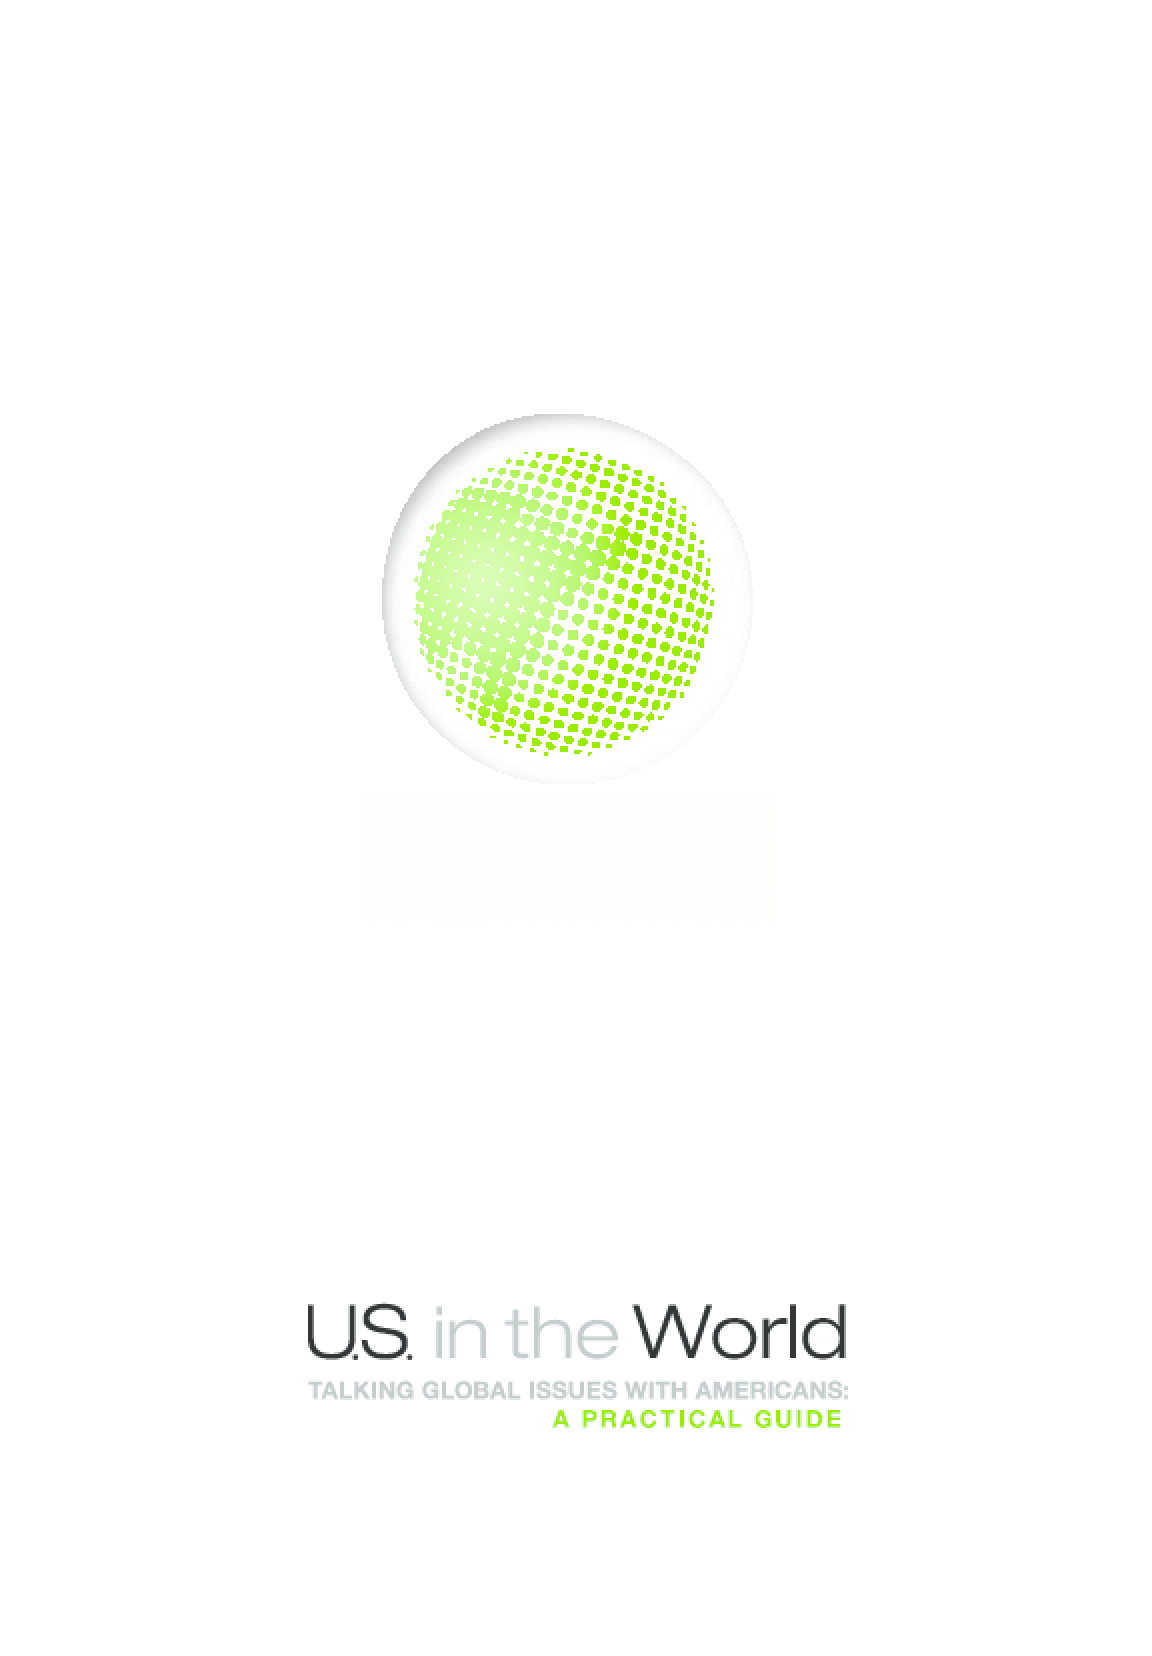 U.S. in the World, Talking Global Issues With Americans: A Practical Guide